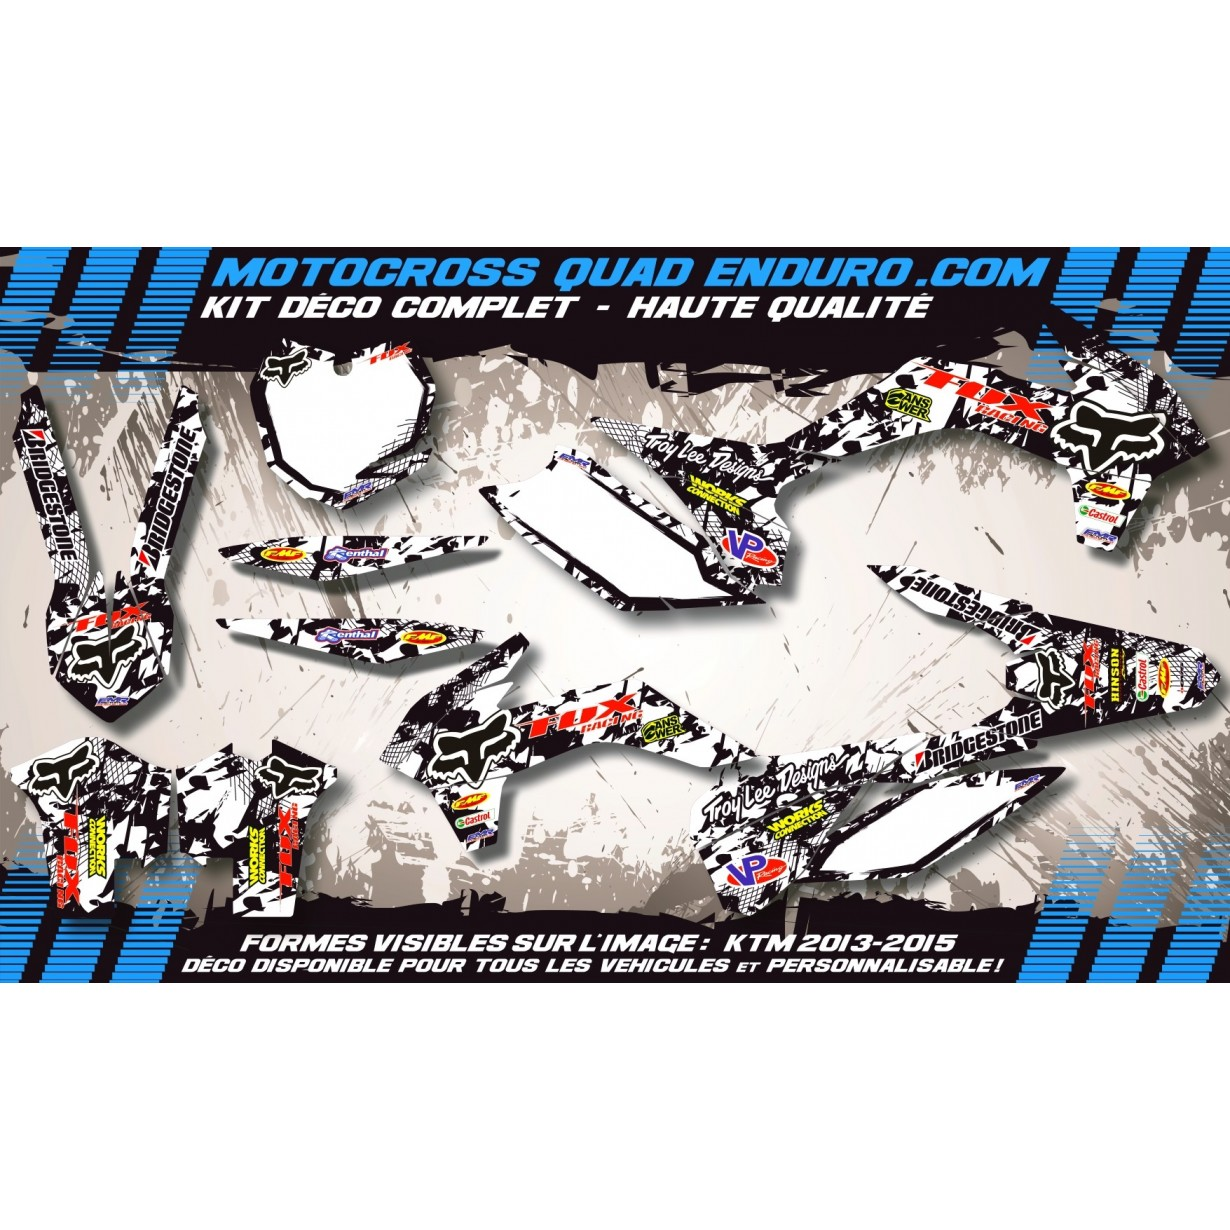 KIT DÉCO Perso TE 450 à 510 05-07 FOX MA9F